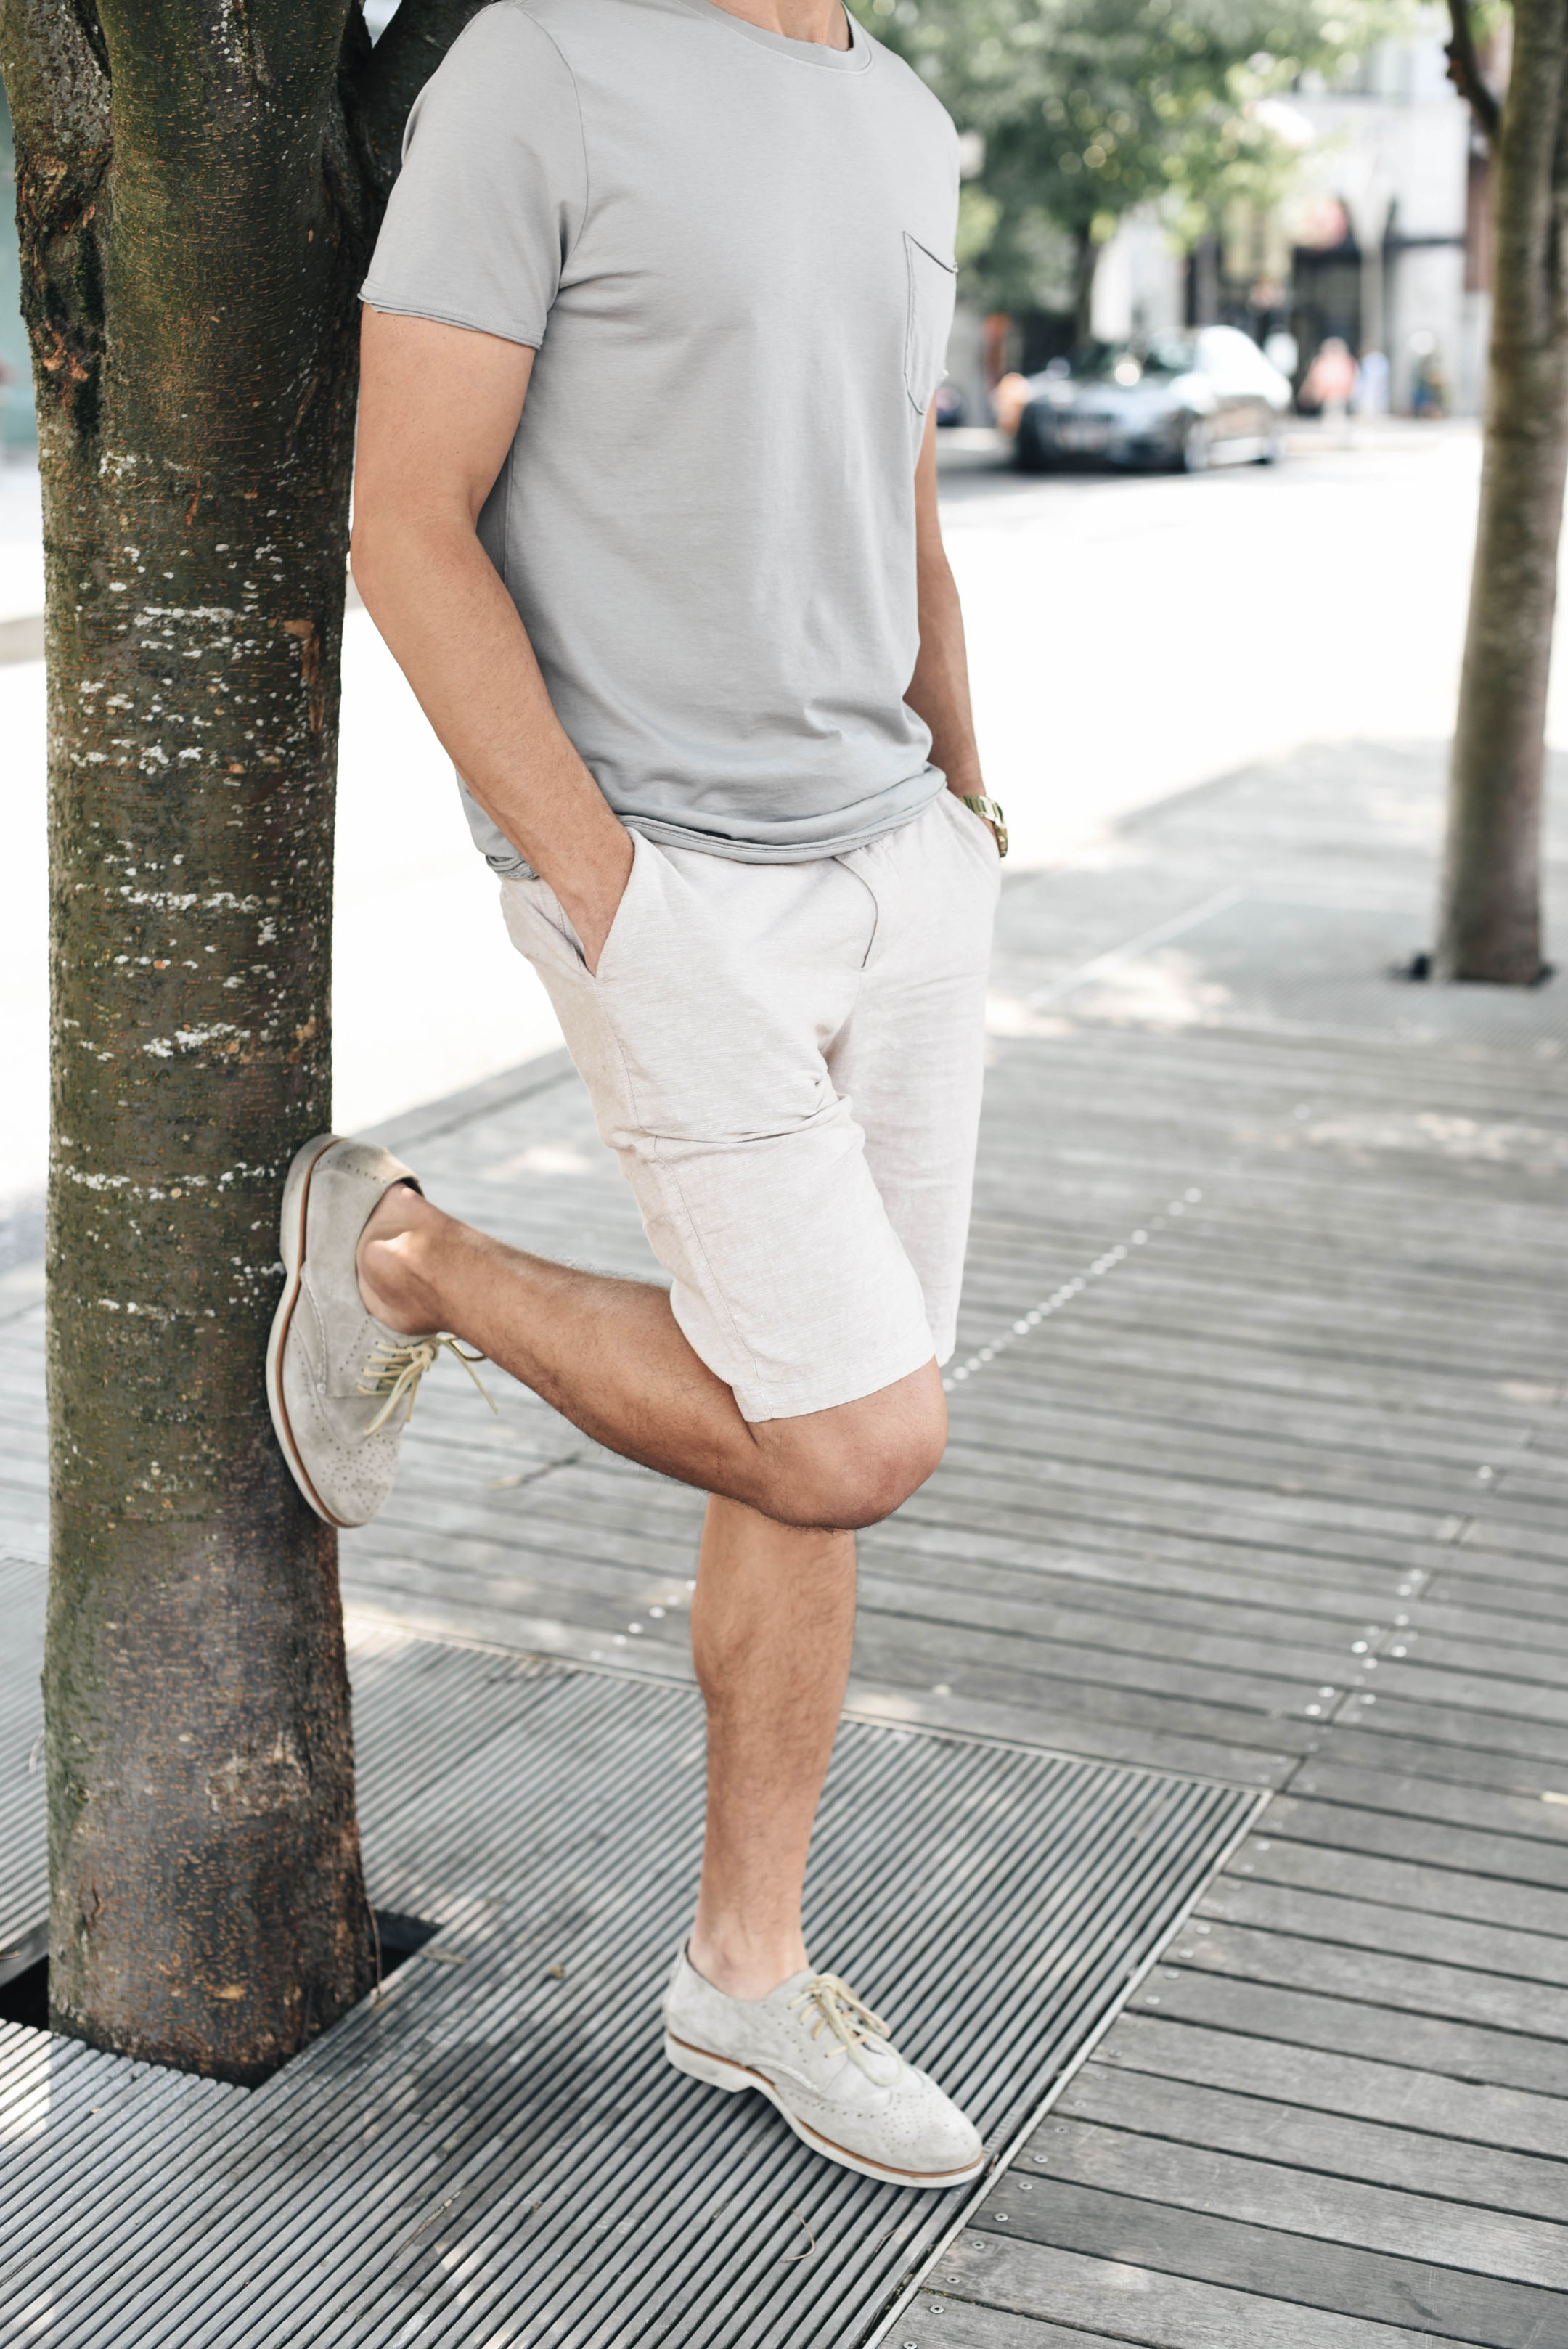 How to style men's linen shorts